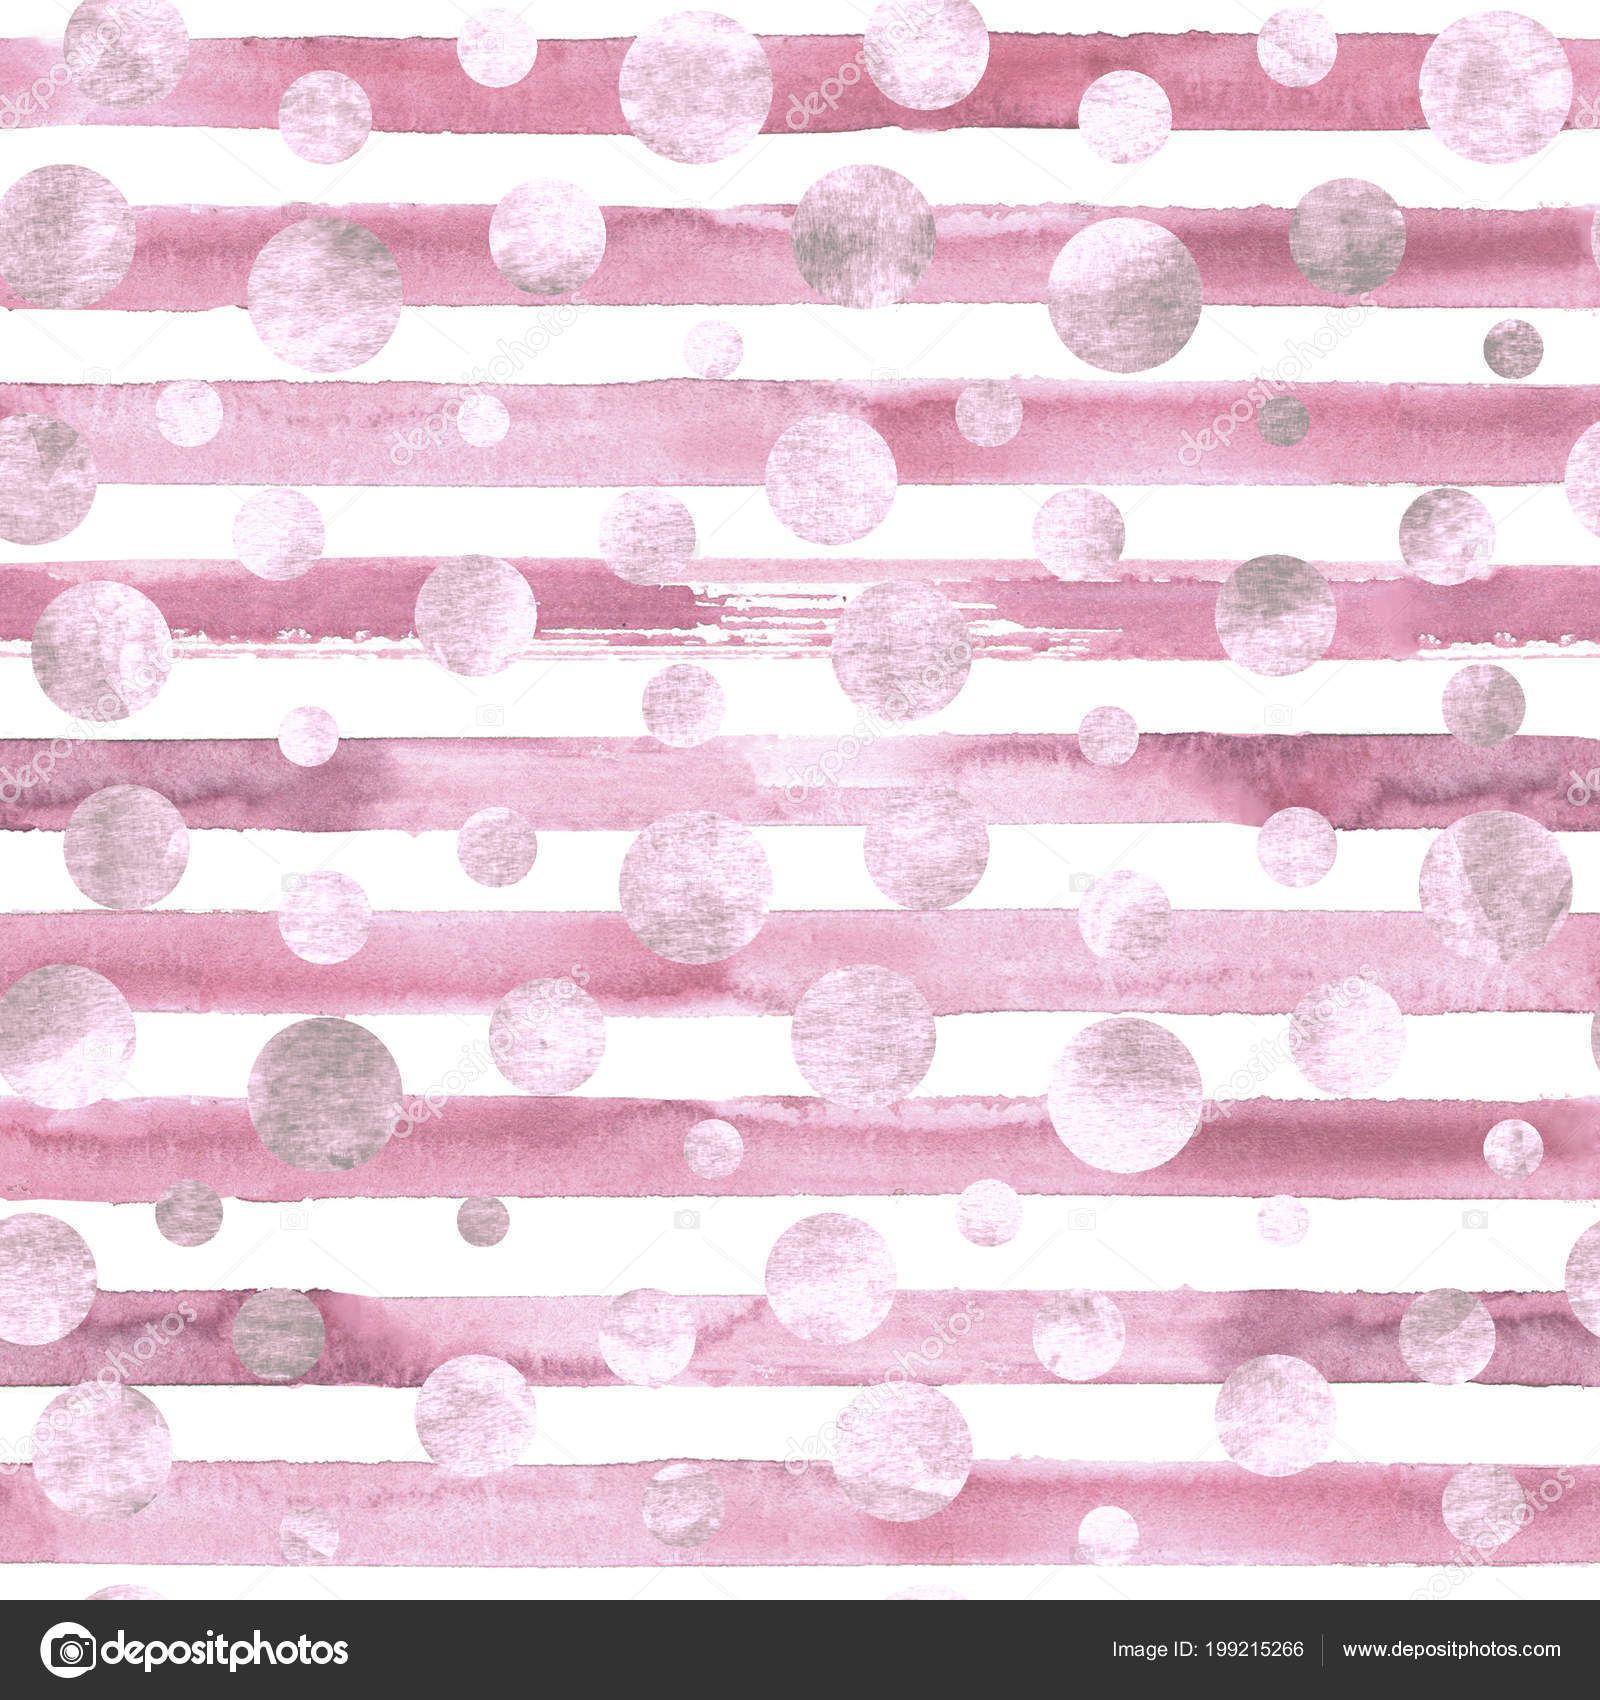 Abstract Geometric Pink Confetti Circles Pink White Stripes Seamless